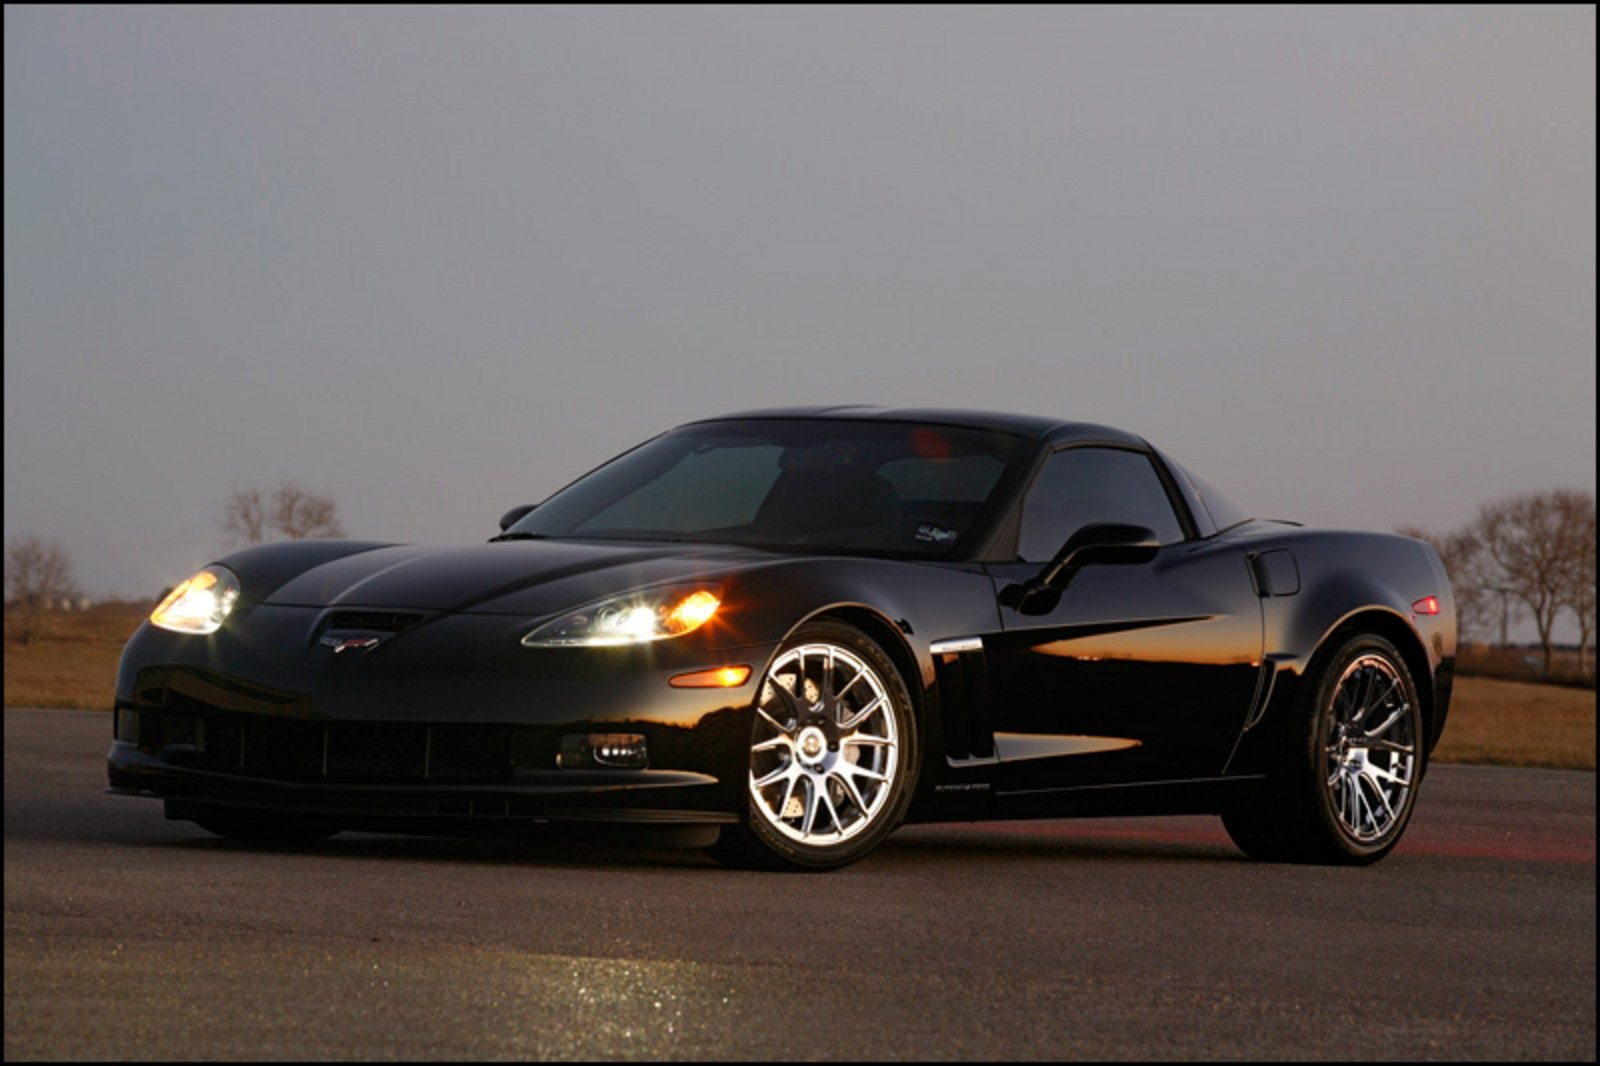 2011 Hennessey Grand Sport Corvette Review - Top Speed